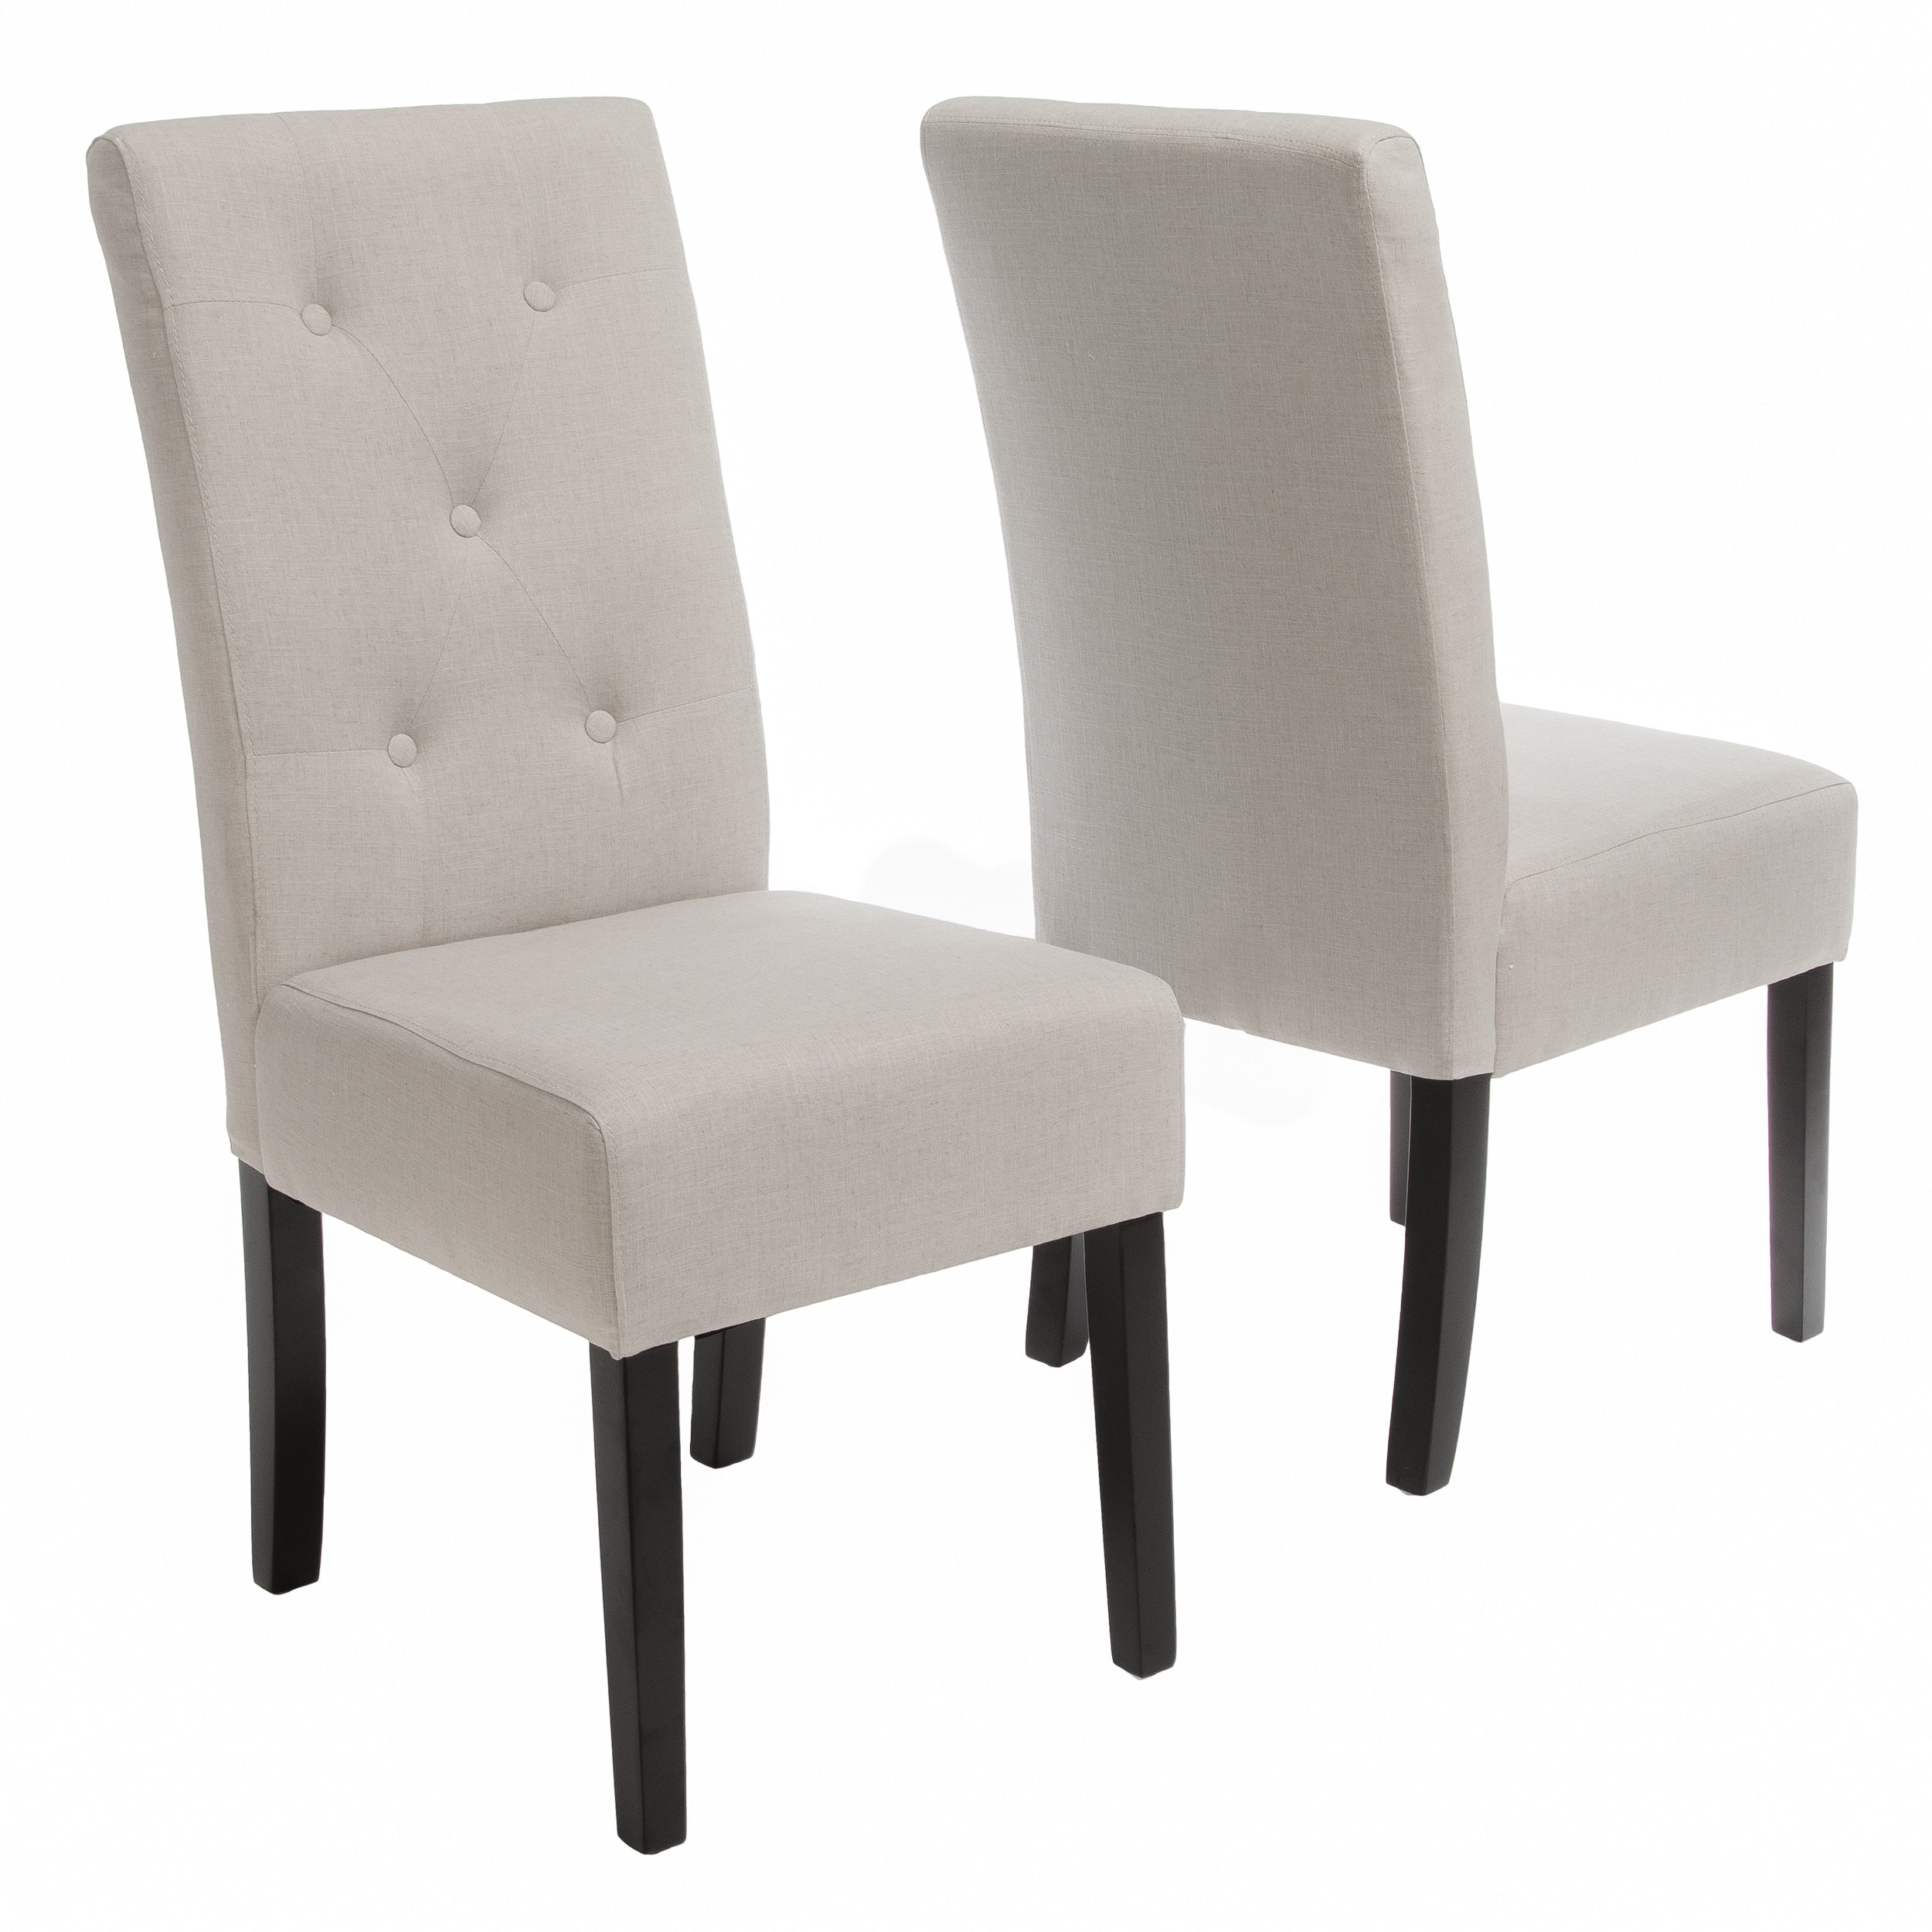 Alexander Natural Fabric Dining Chair Set of 2